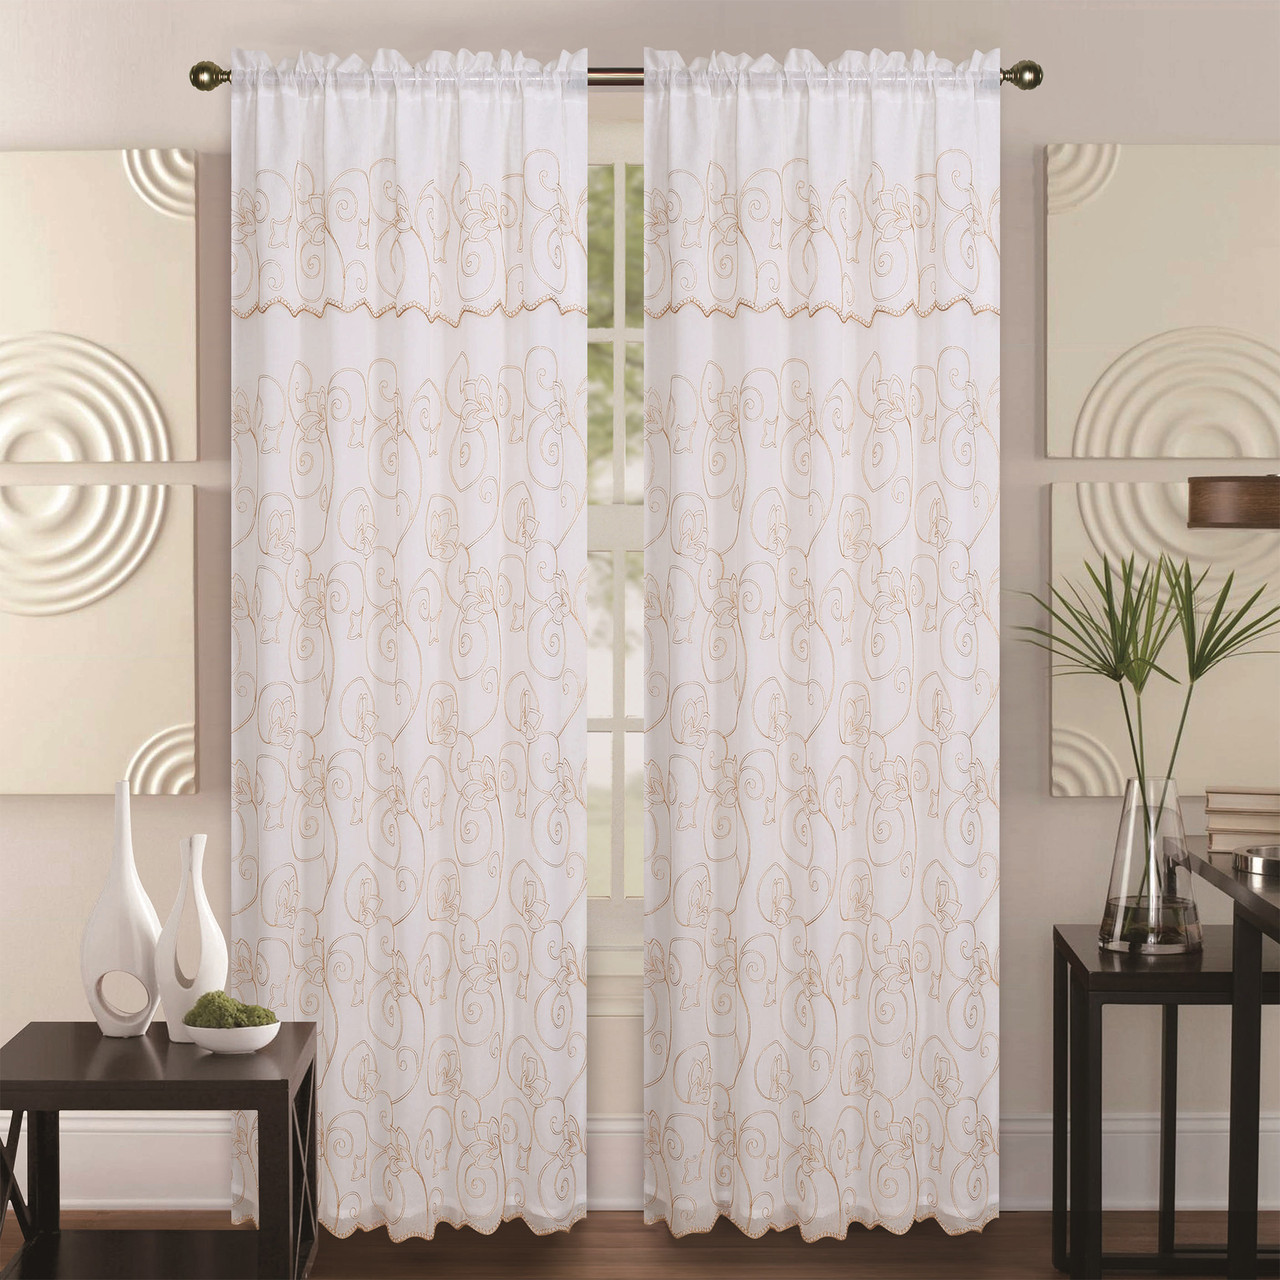 Linen window treatments - Double Layer Embroidery Floral Sheer Linen Front Faux Silk Back Rod Pocket Valance Decorative